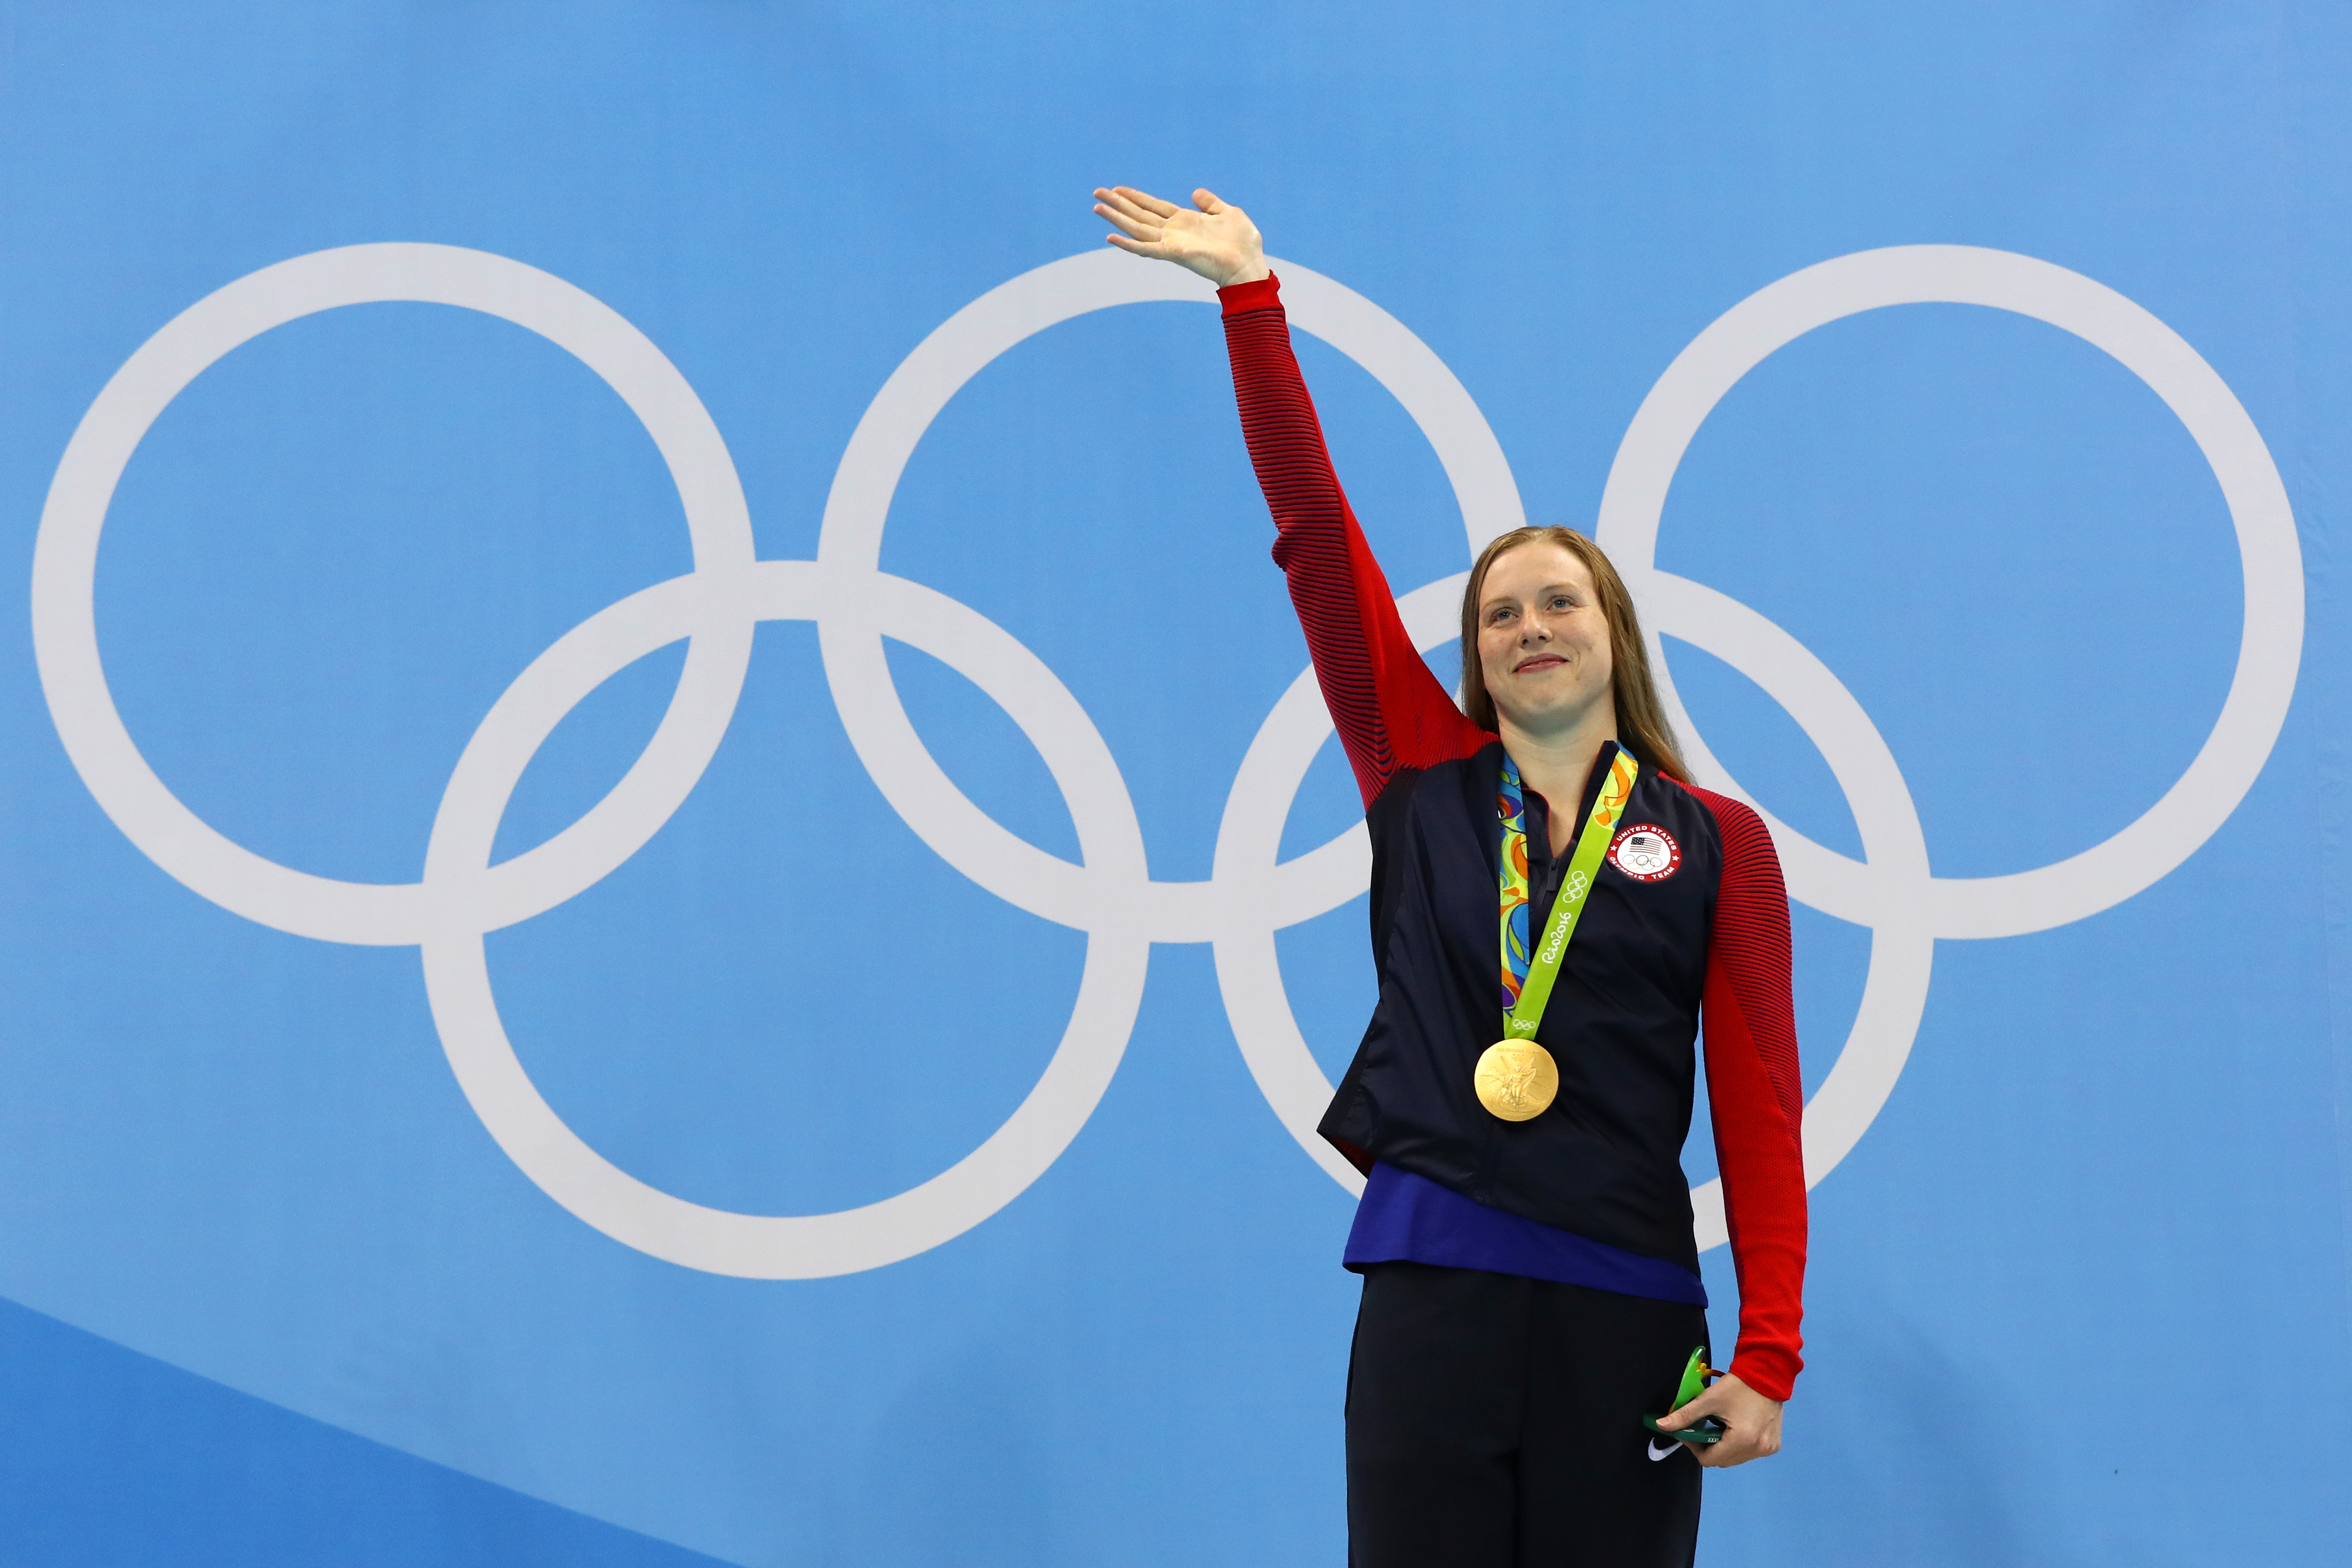 Gold medalist Lilly King of the United States poses during the medal ceremony for the Women's 100m Breaststroke Final on Day 3 of the Rio 2016 Olympic Games at the Olympic Aquatics Stadium in Rio de Janeiro on Aug. 8, 2016.